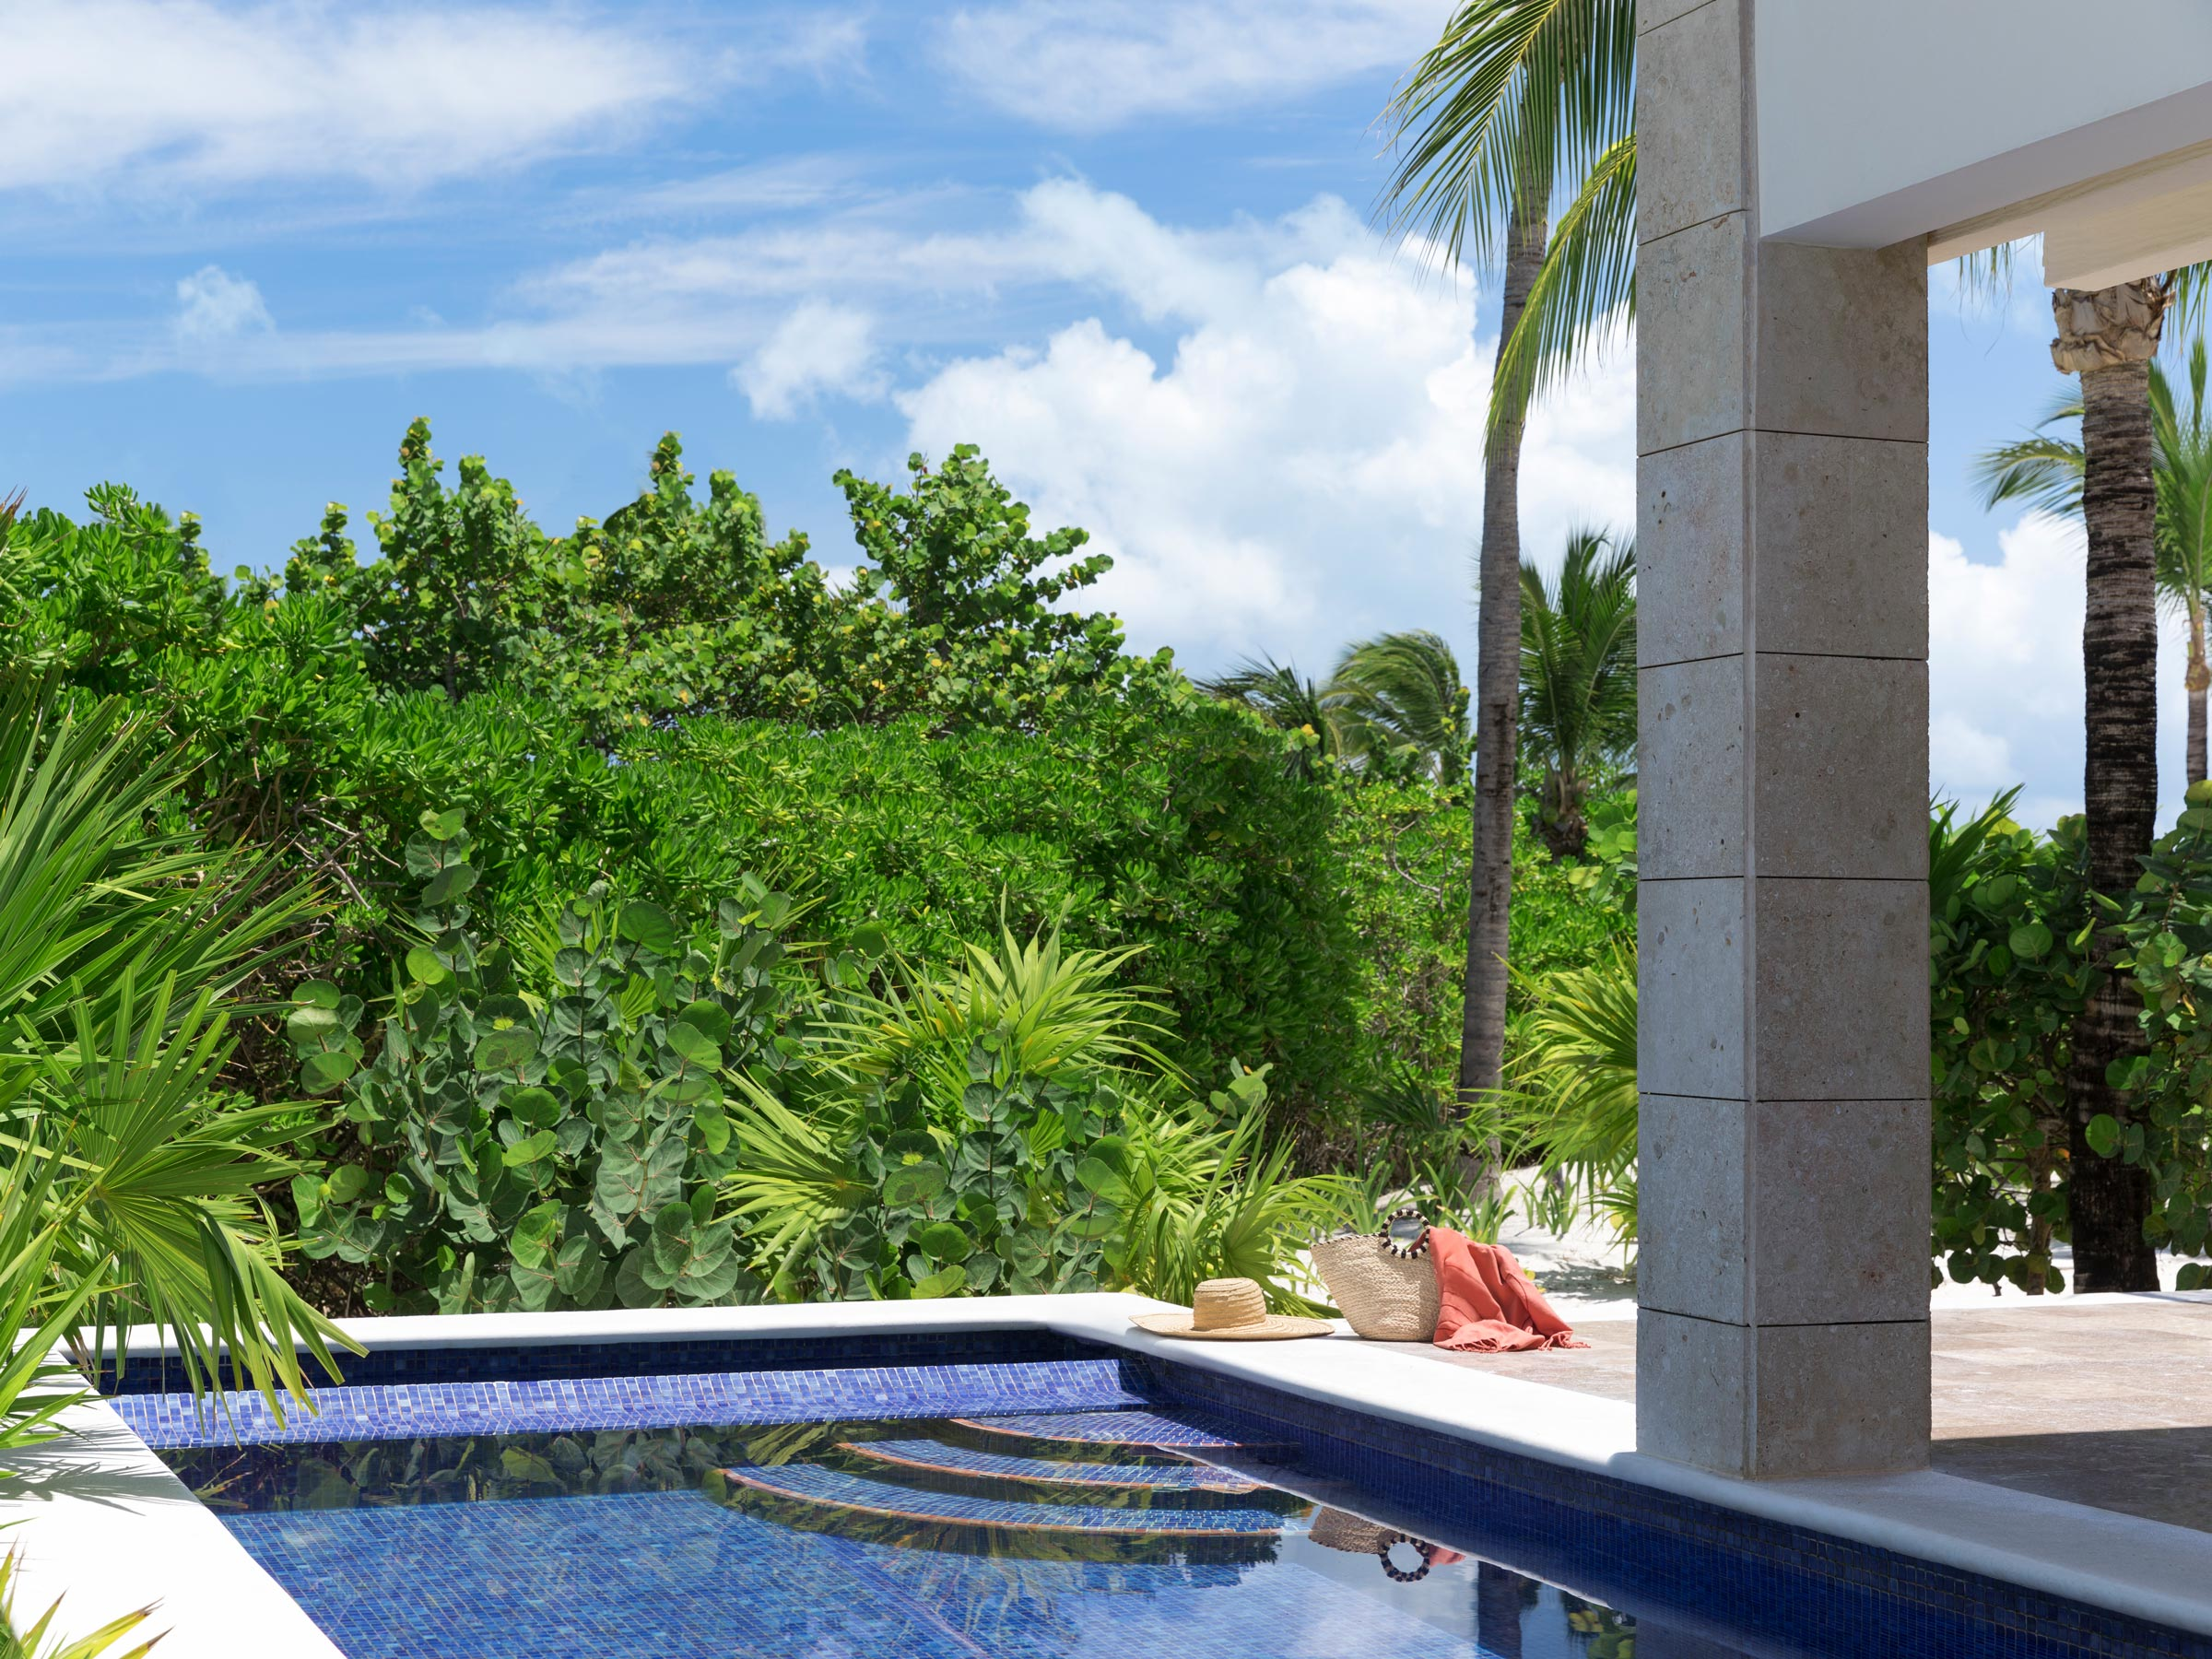 The Most Luxurious Honeymoon Suites in Playa Mujeres